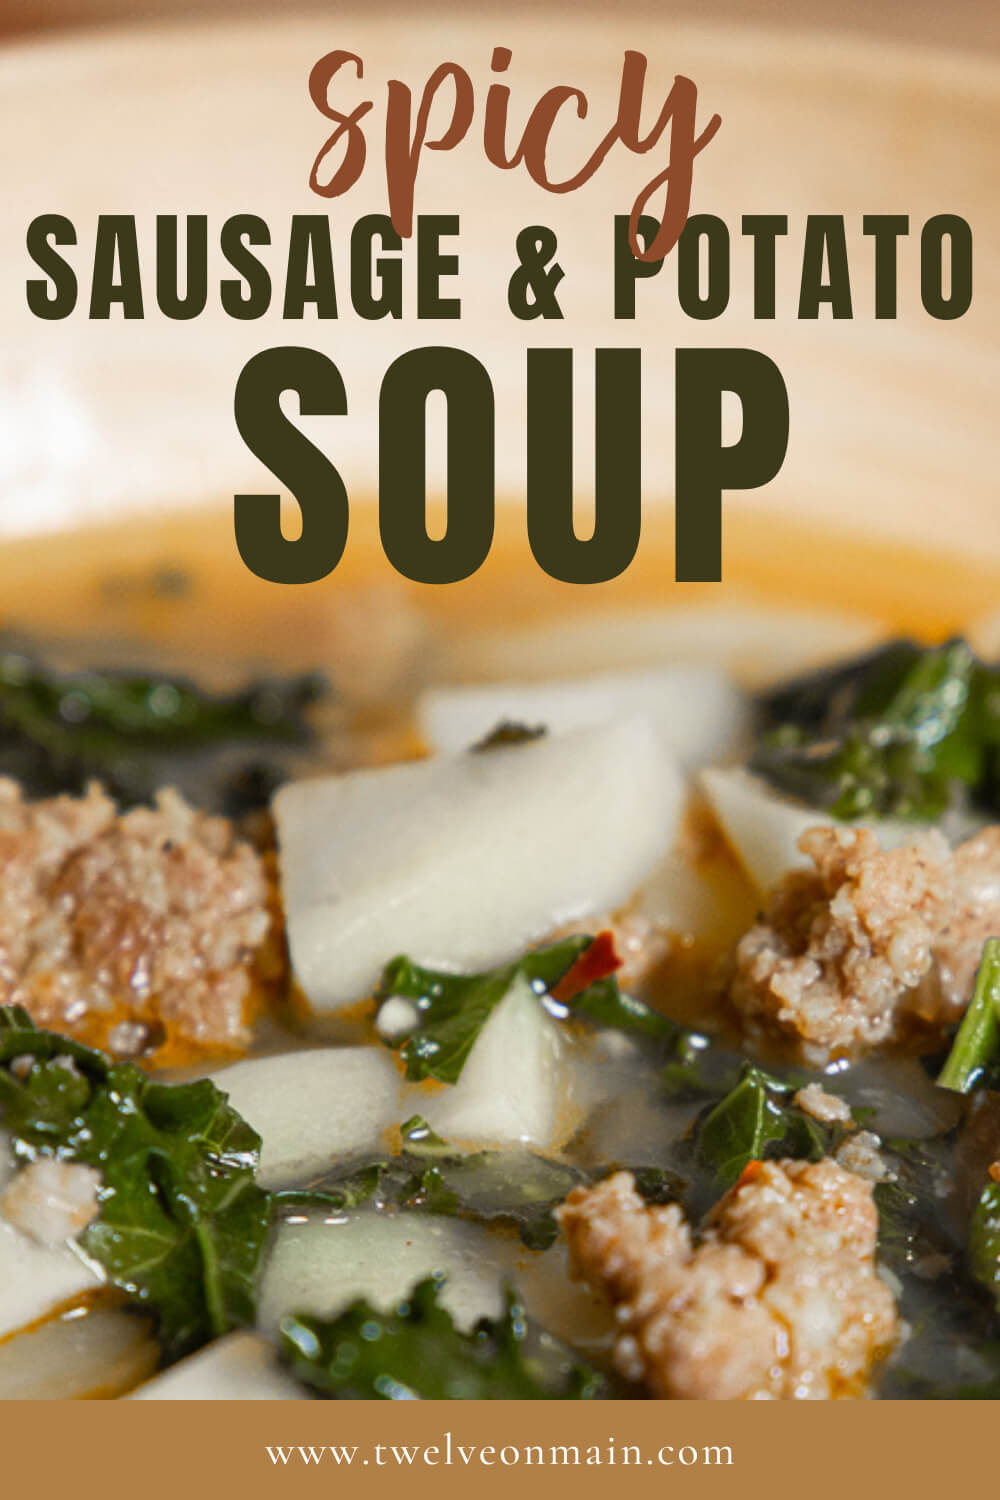 This sausage, kale and potato sup is made even better using spicy sausage!  Try this spicy sausage and potato soup today!  The flavor is out of this world!  It is perfect for a rainy day or a busy weeknight dinner!